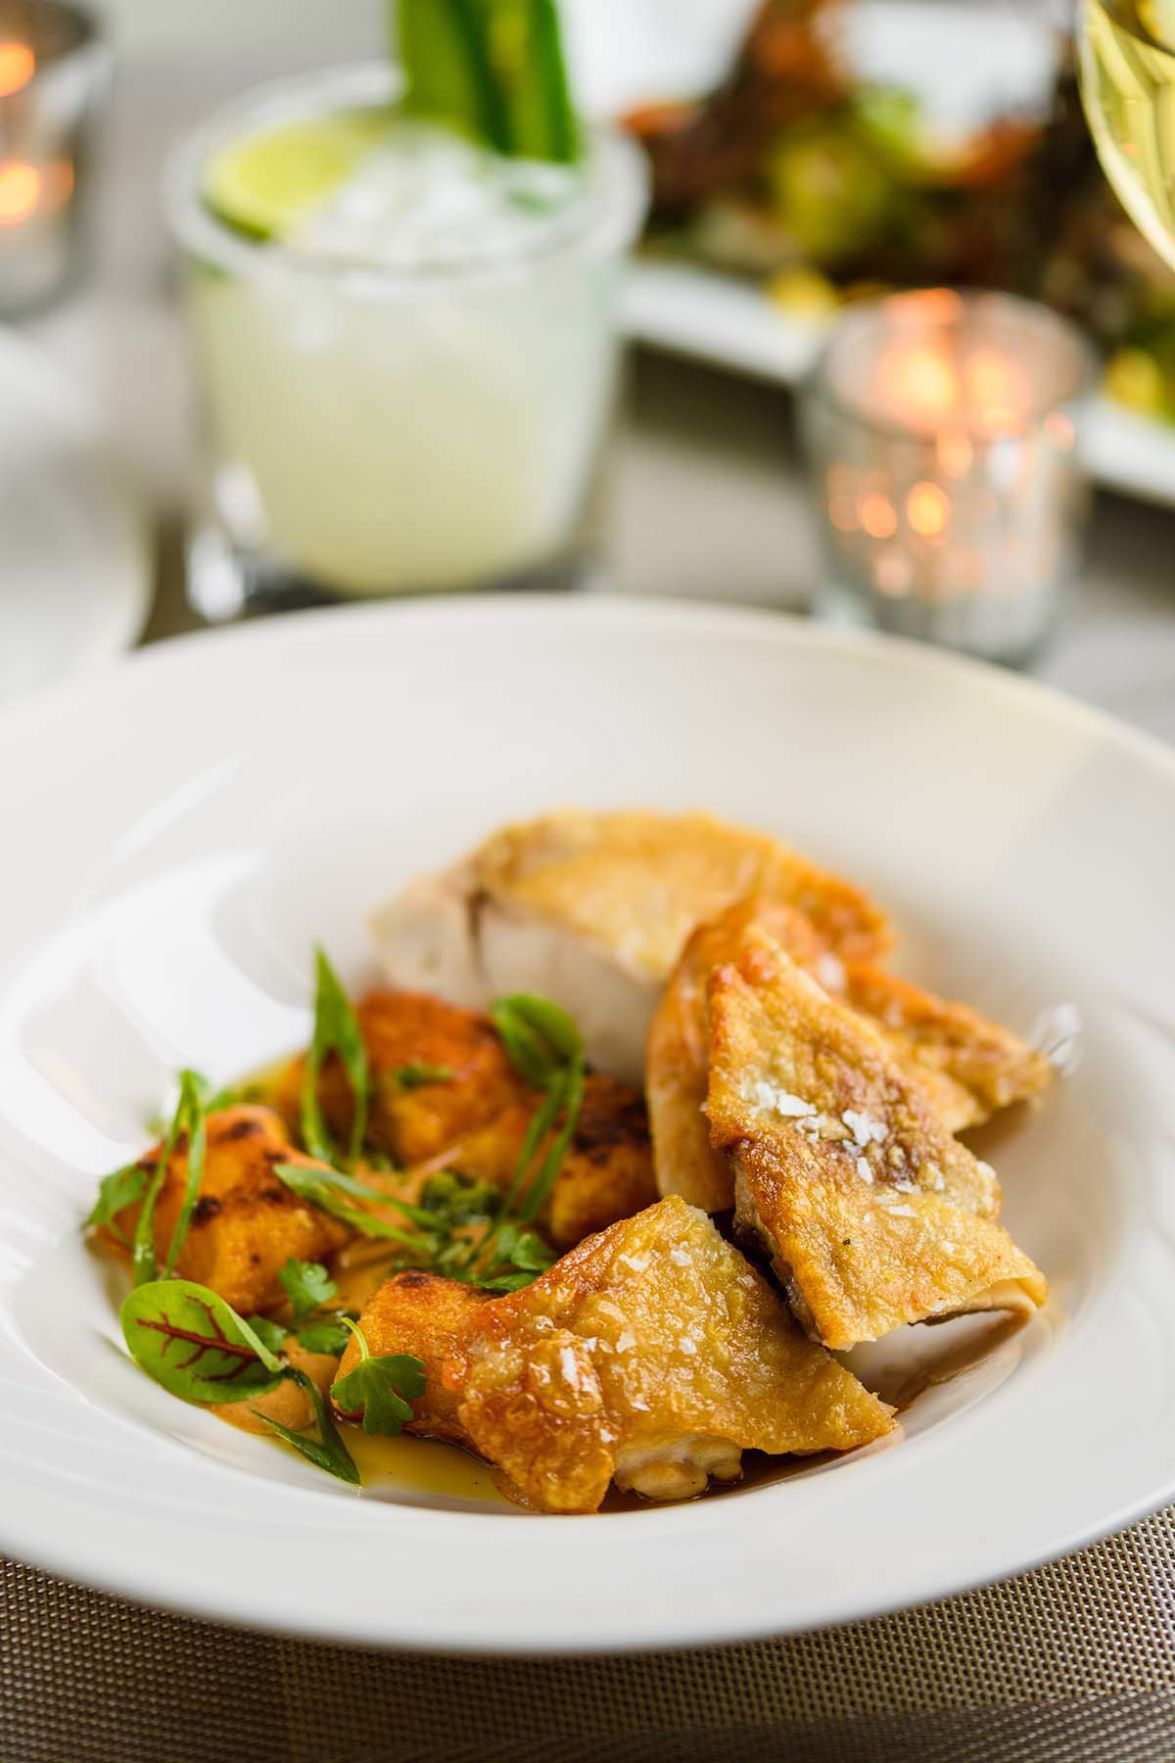 Carlsons Landing Chicken Deboned breast and thigh Roasted chili and cocoa sauce Sweet potato gnocchi Gremolata (2)_1.jpg